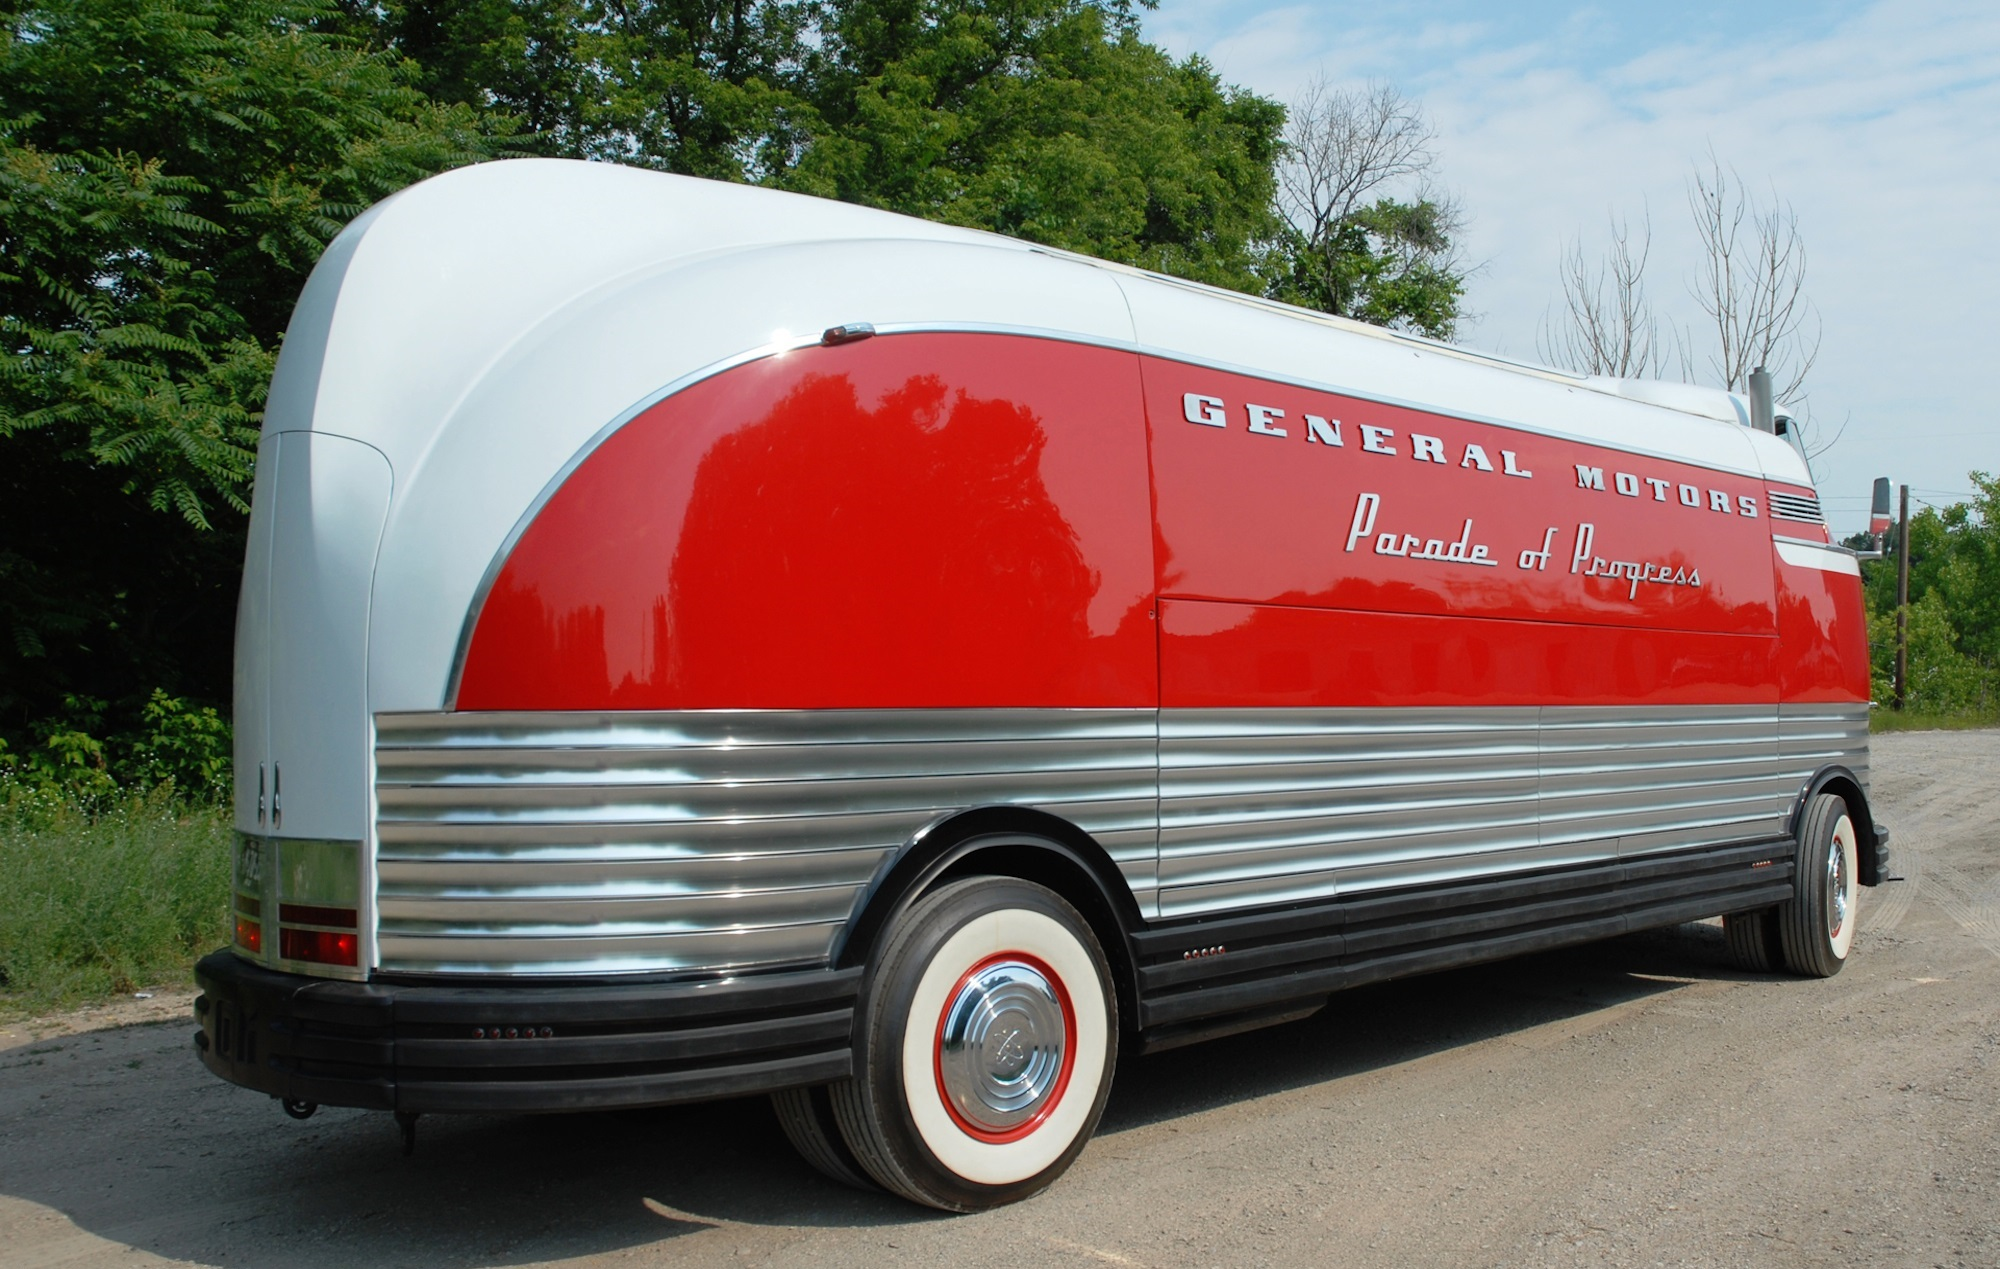 gm-futurliner.2000x1333.May-30-2014_11.23.52.764632